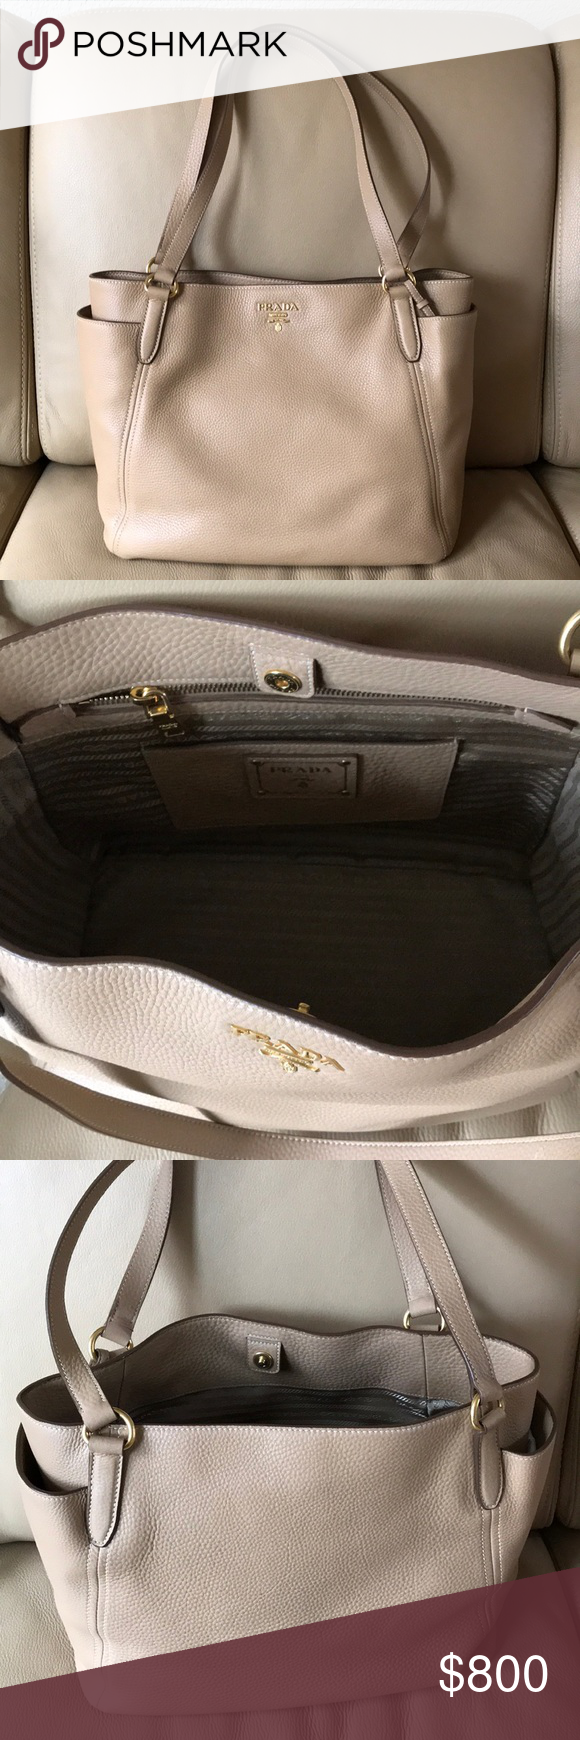 18be65f129ff Prada Shoulder Tote Bag Vitello Daino Hi all! This is an AUTHENTIC prada  purse that was purchased from the Livermore premium outlets at Prada.